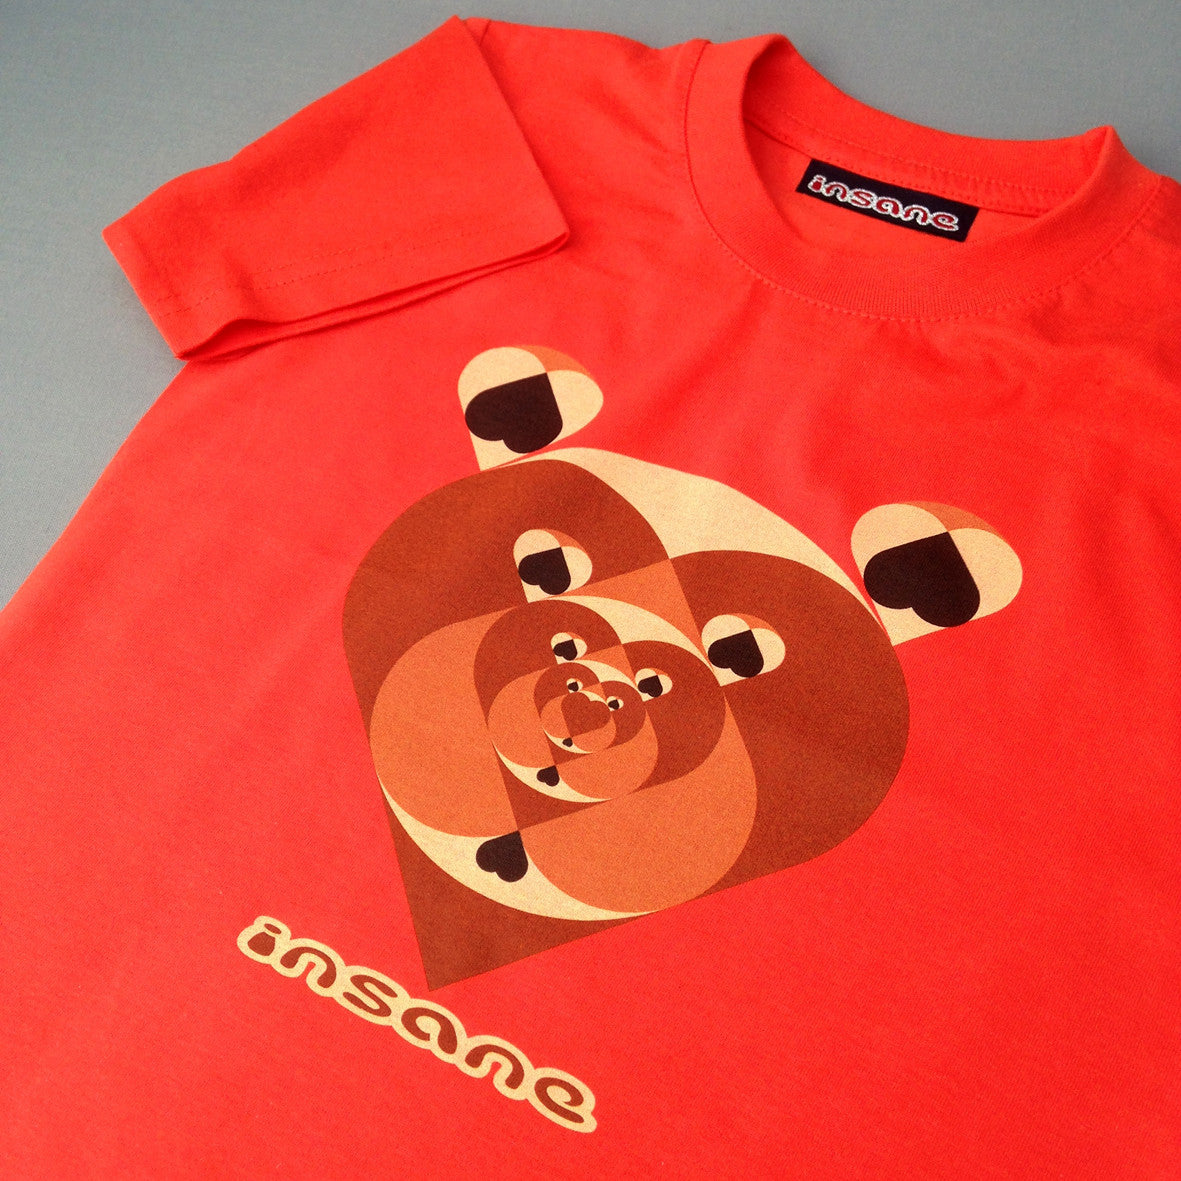 Insane Kids; Tunnel of Love Bears T Shirt.